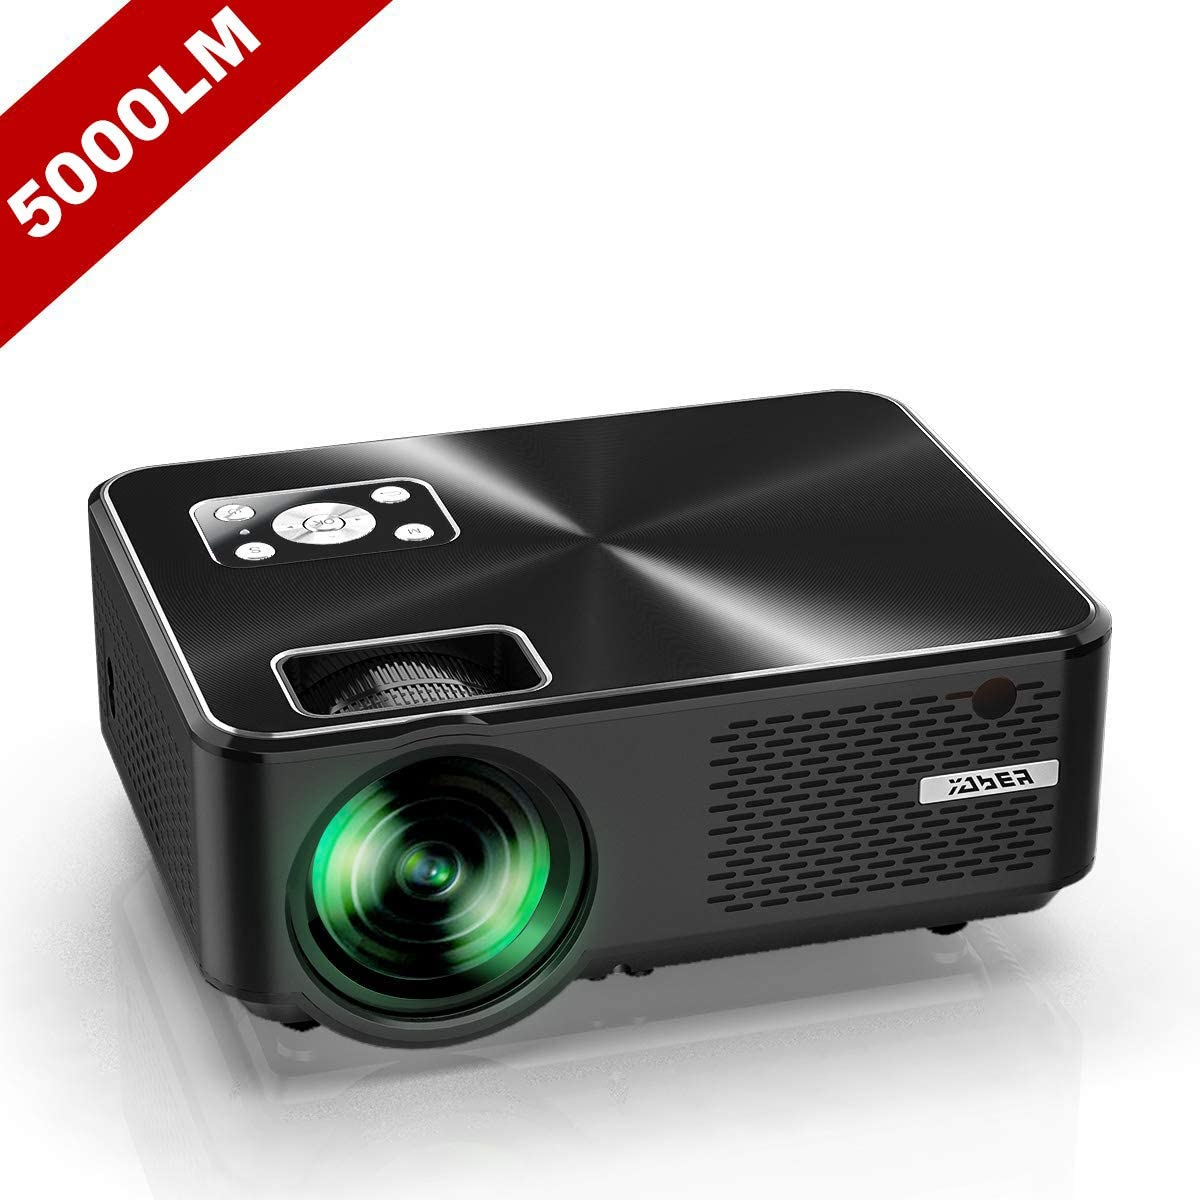 YABER Portable Projector with 5000 Lumen Upgrade Full HD 1080P 200